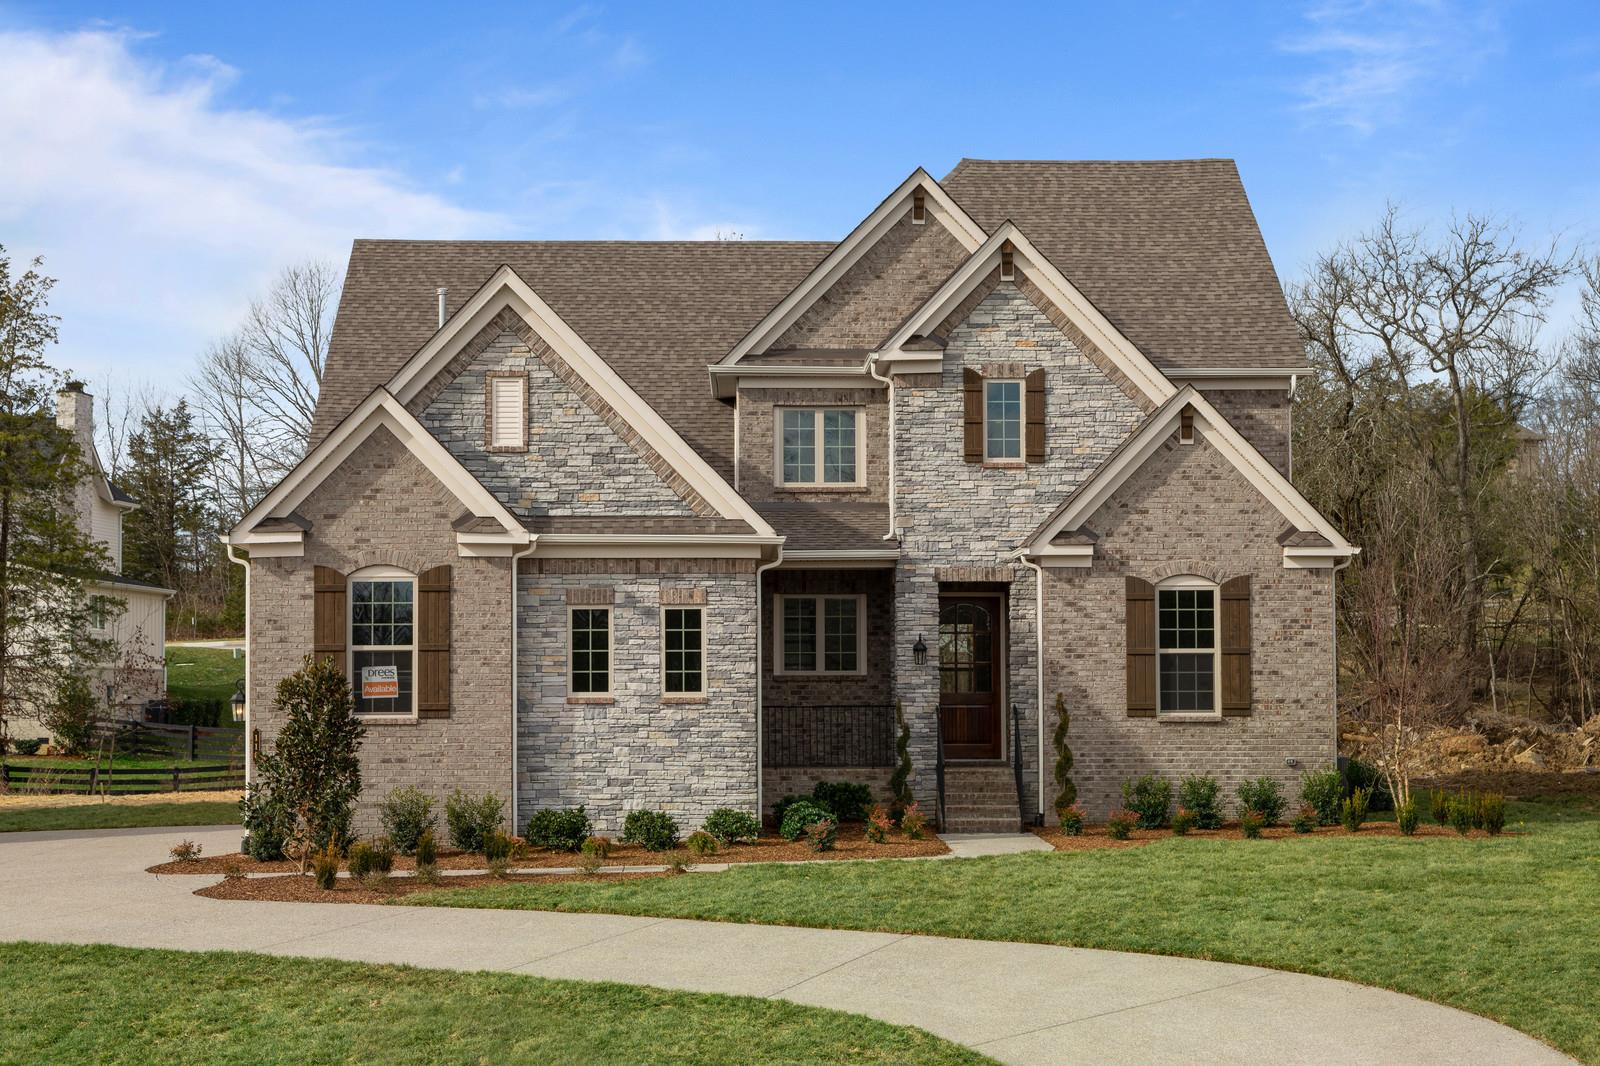 116 Asher Downs Circle #4, Nolensville, Tennessee